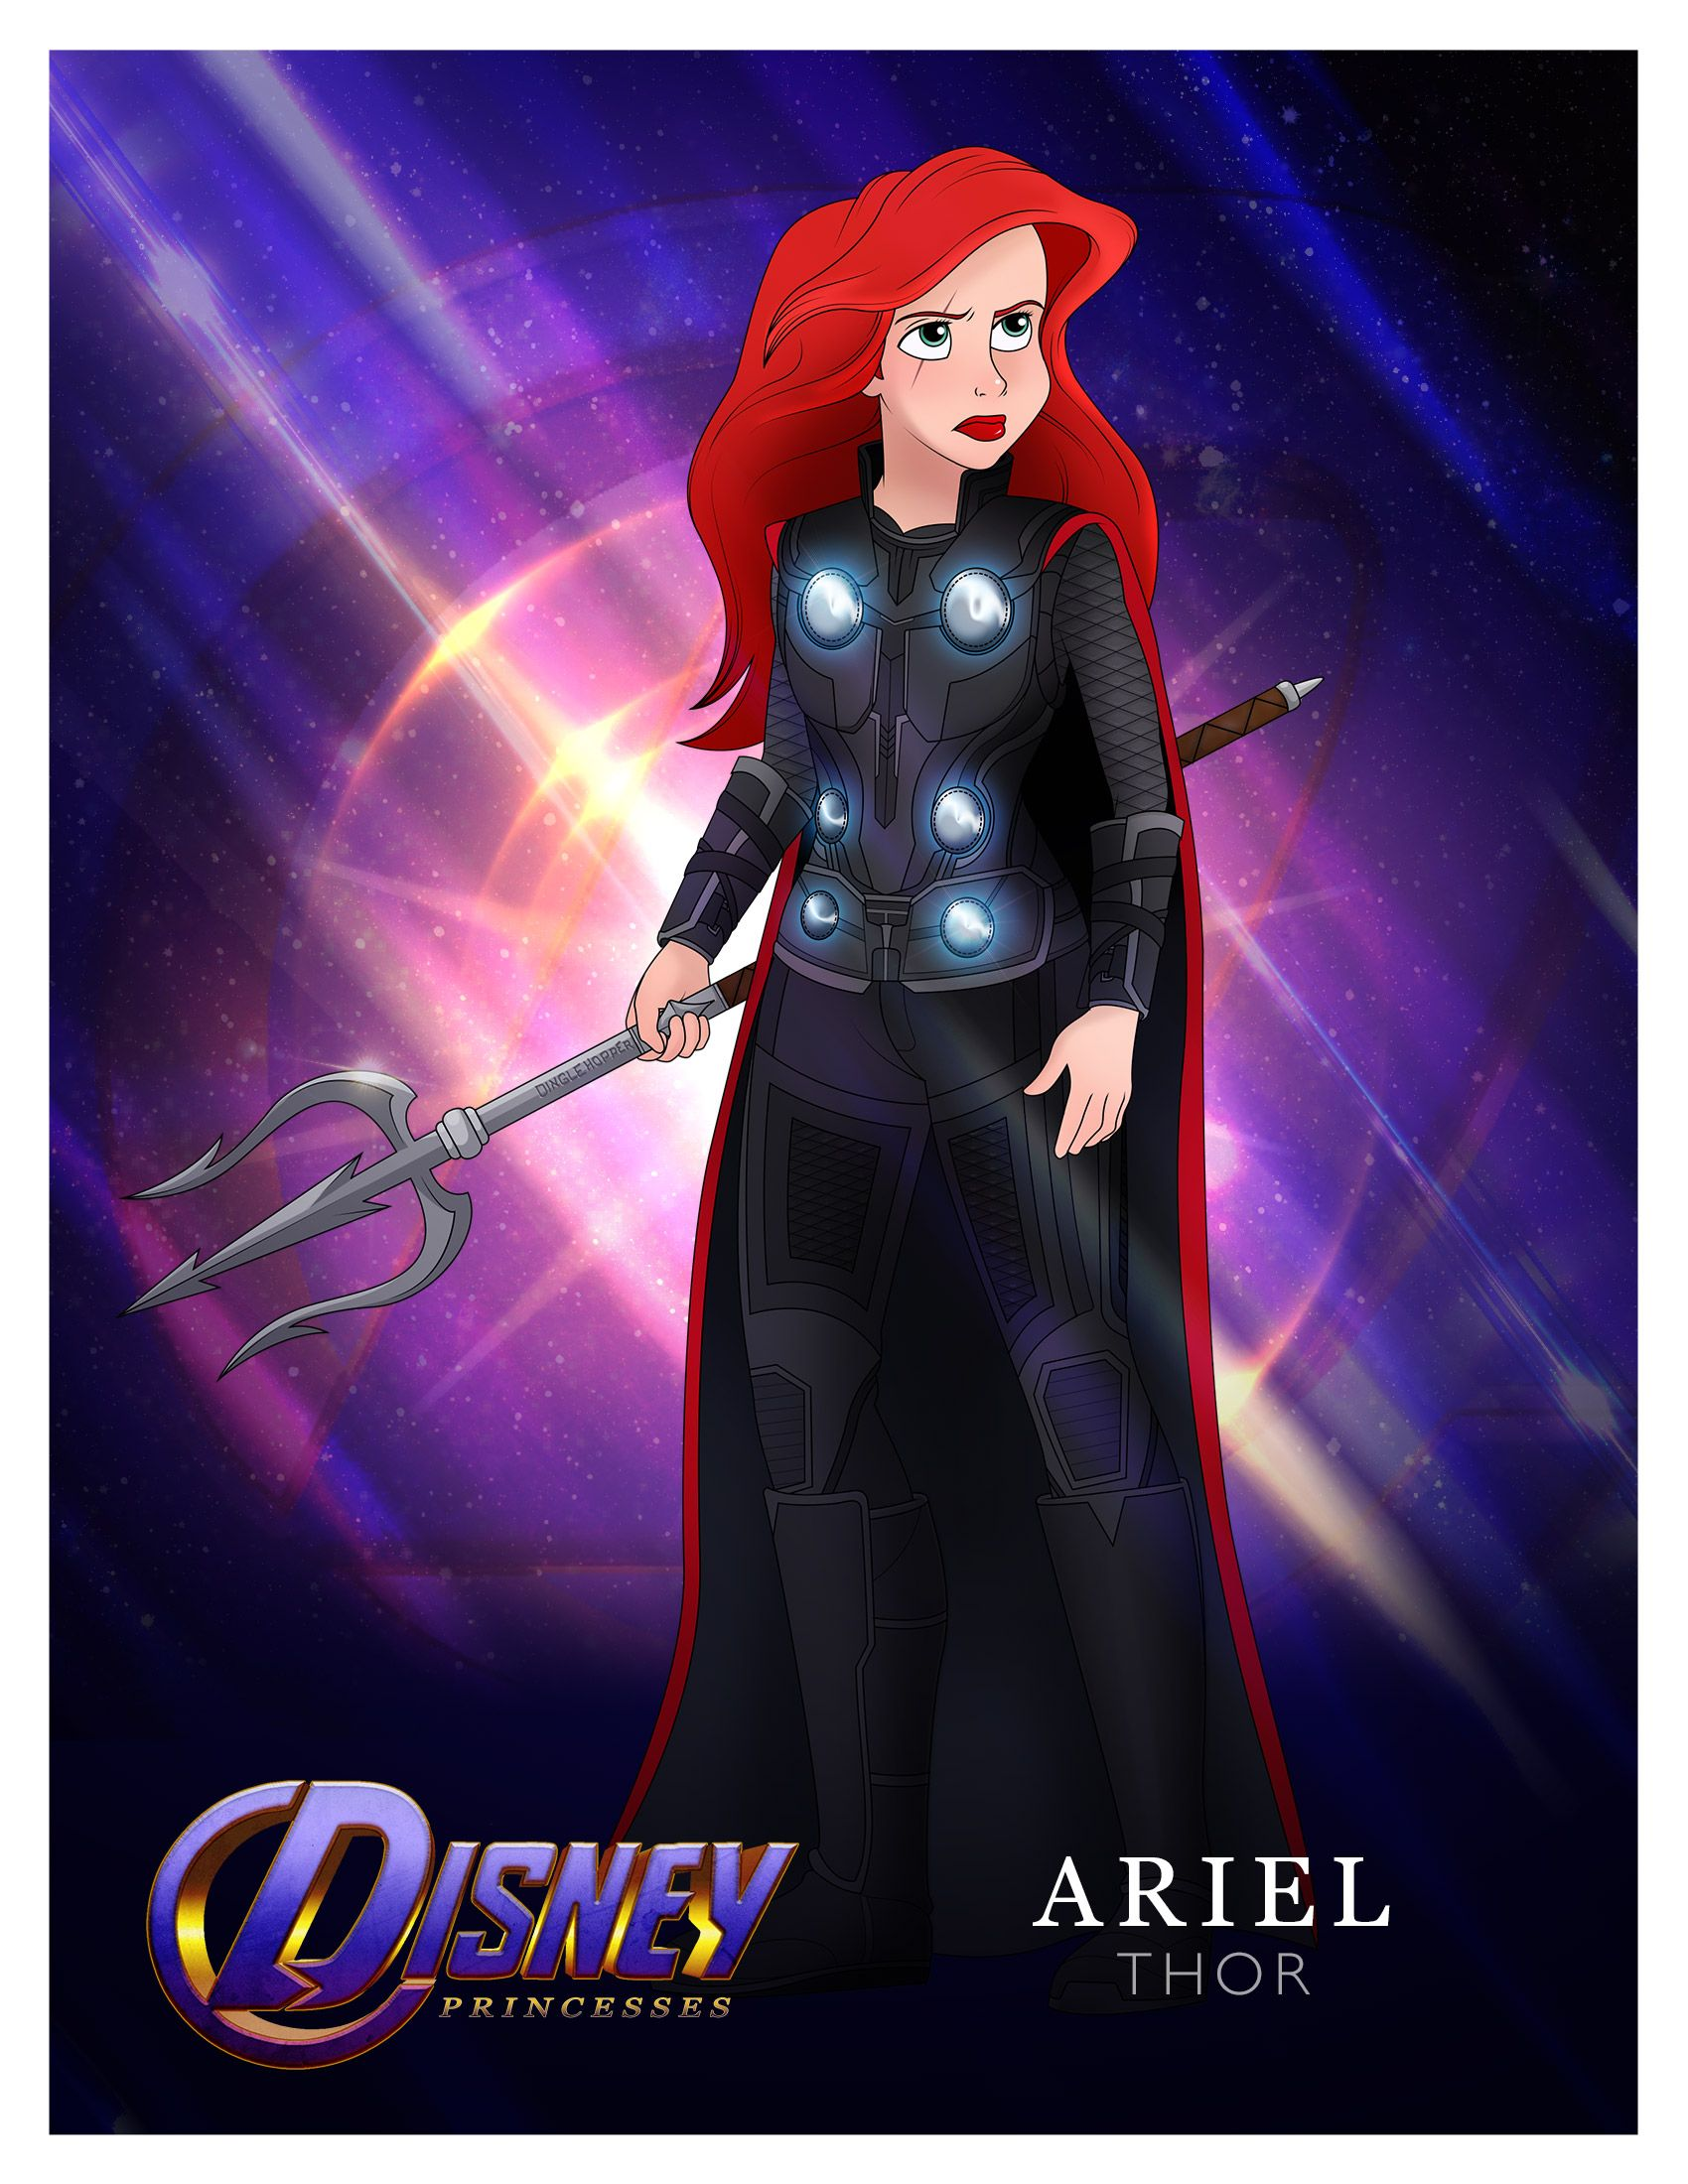 Princesses, Assemble! Disney Princess Avengers Mashup #disneyprincess